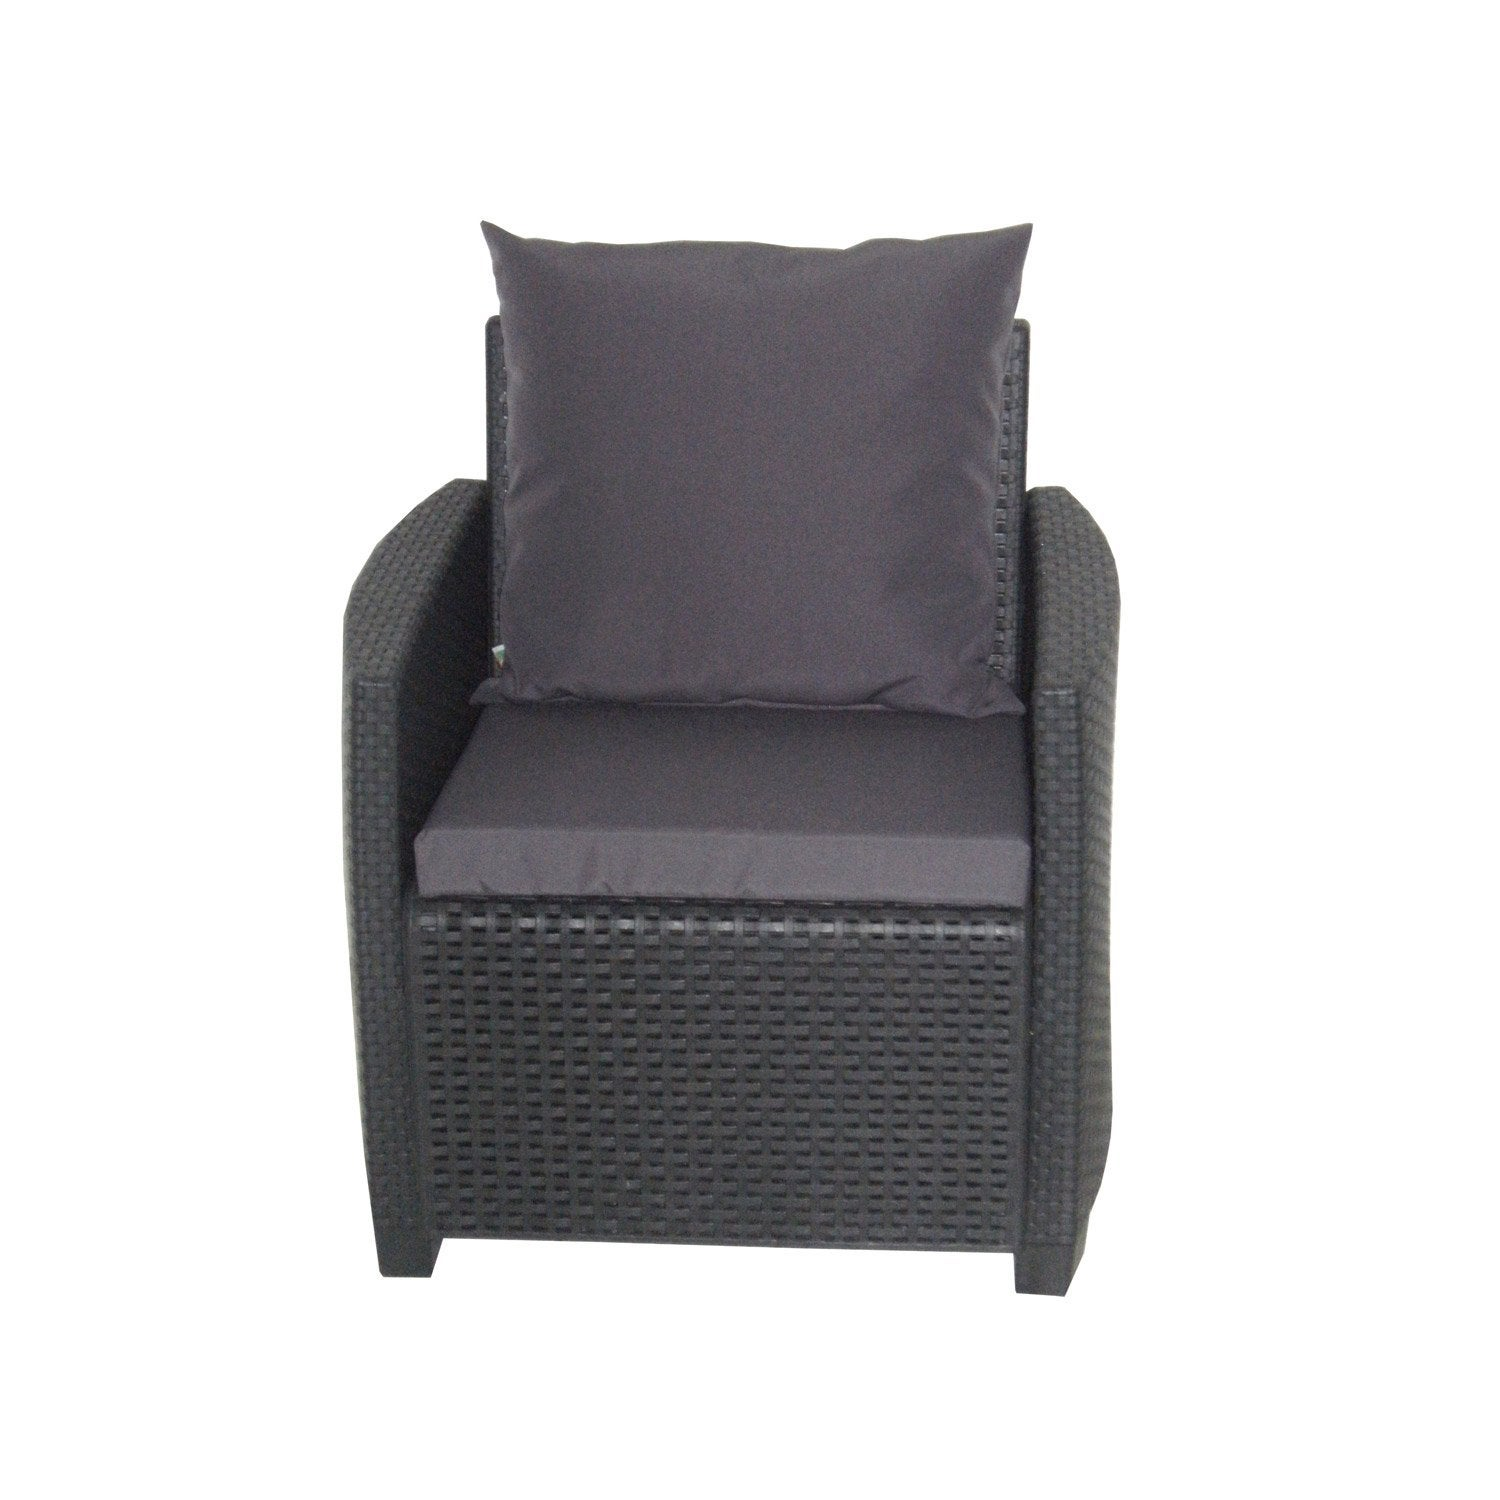 coussin lounge pour assise pour ext rieur. Black Bedroom Furniture Sets. Home Design Ideas